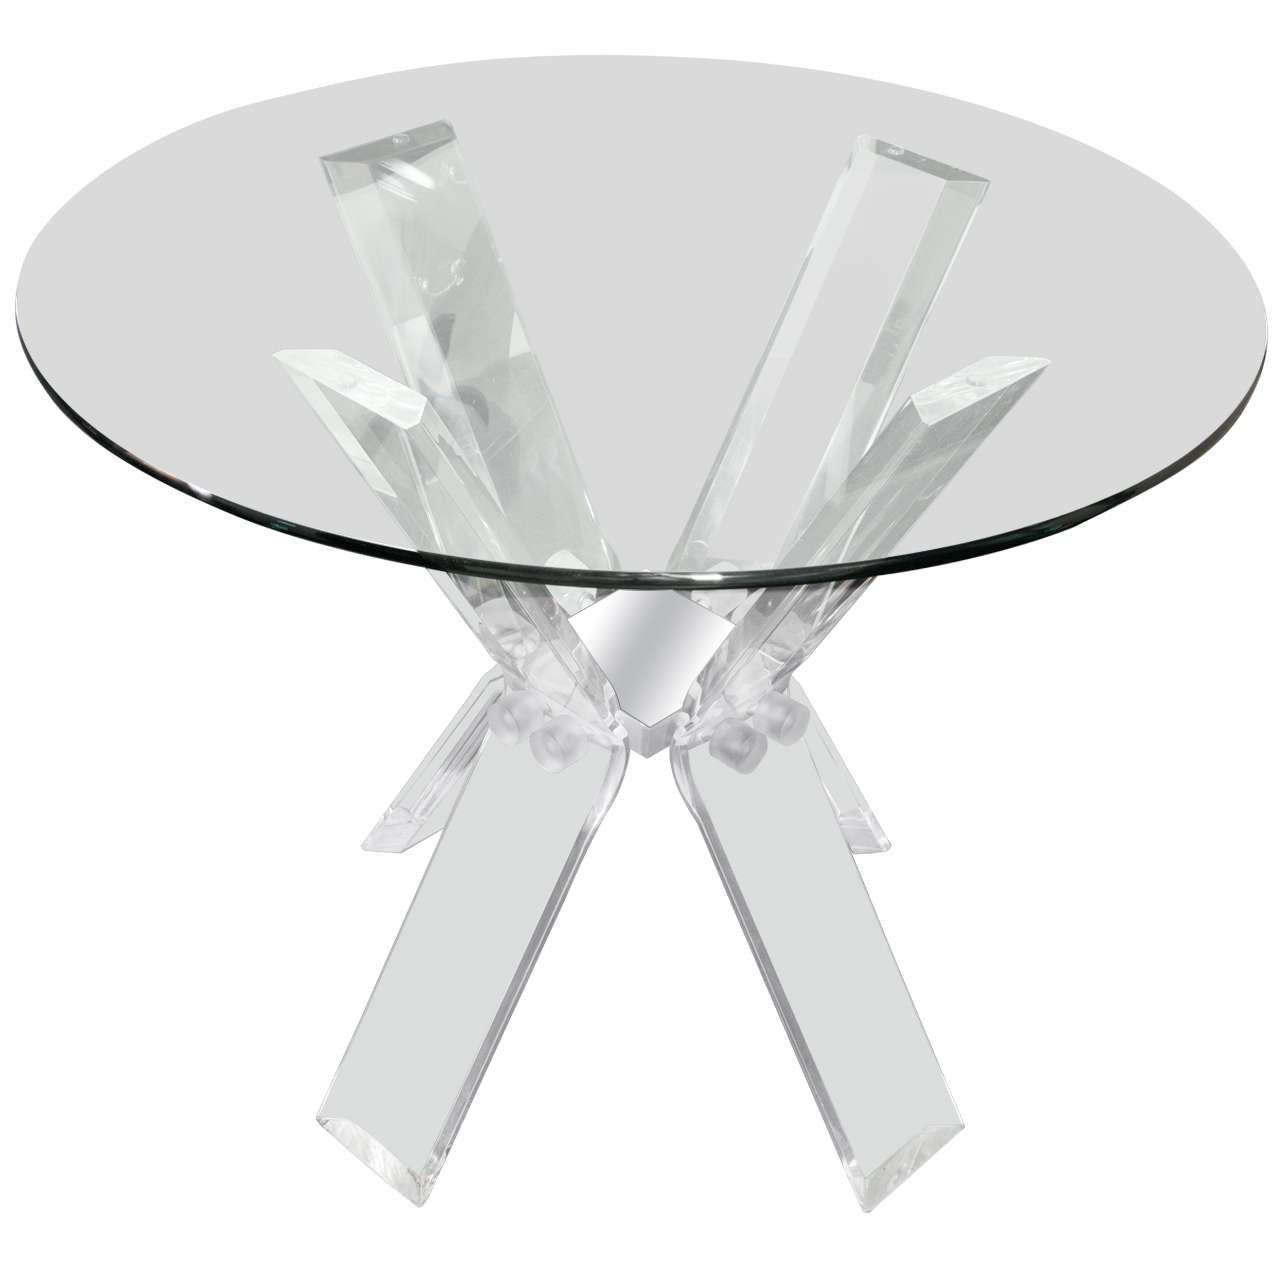 Lucite Round Dining Table Gallery Dining Table Ideas : X from sorahana.info size 1280 x 1280 jpeg 49kB